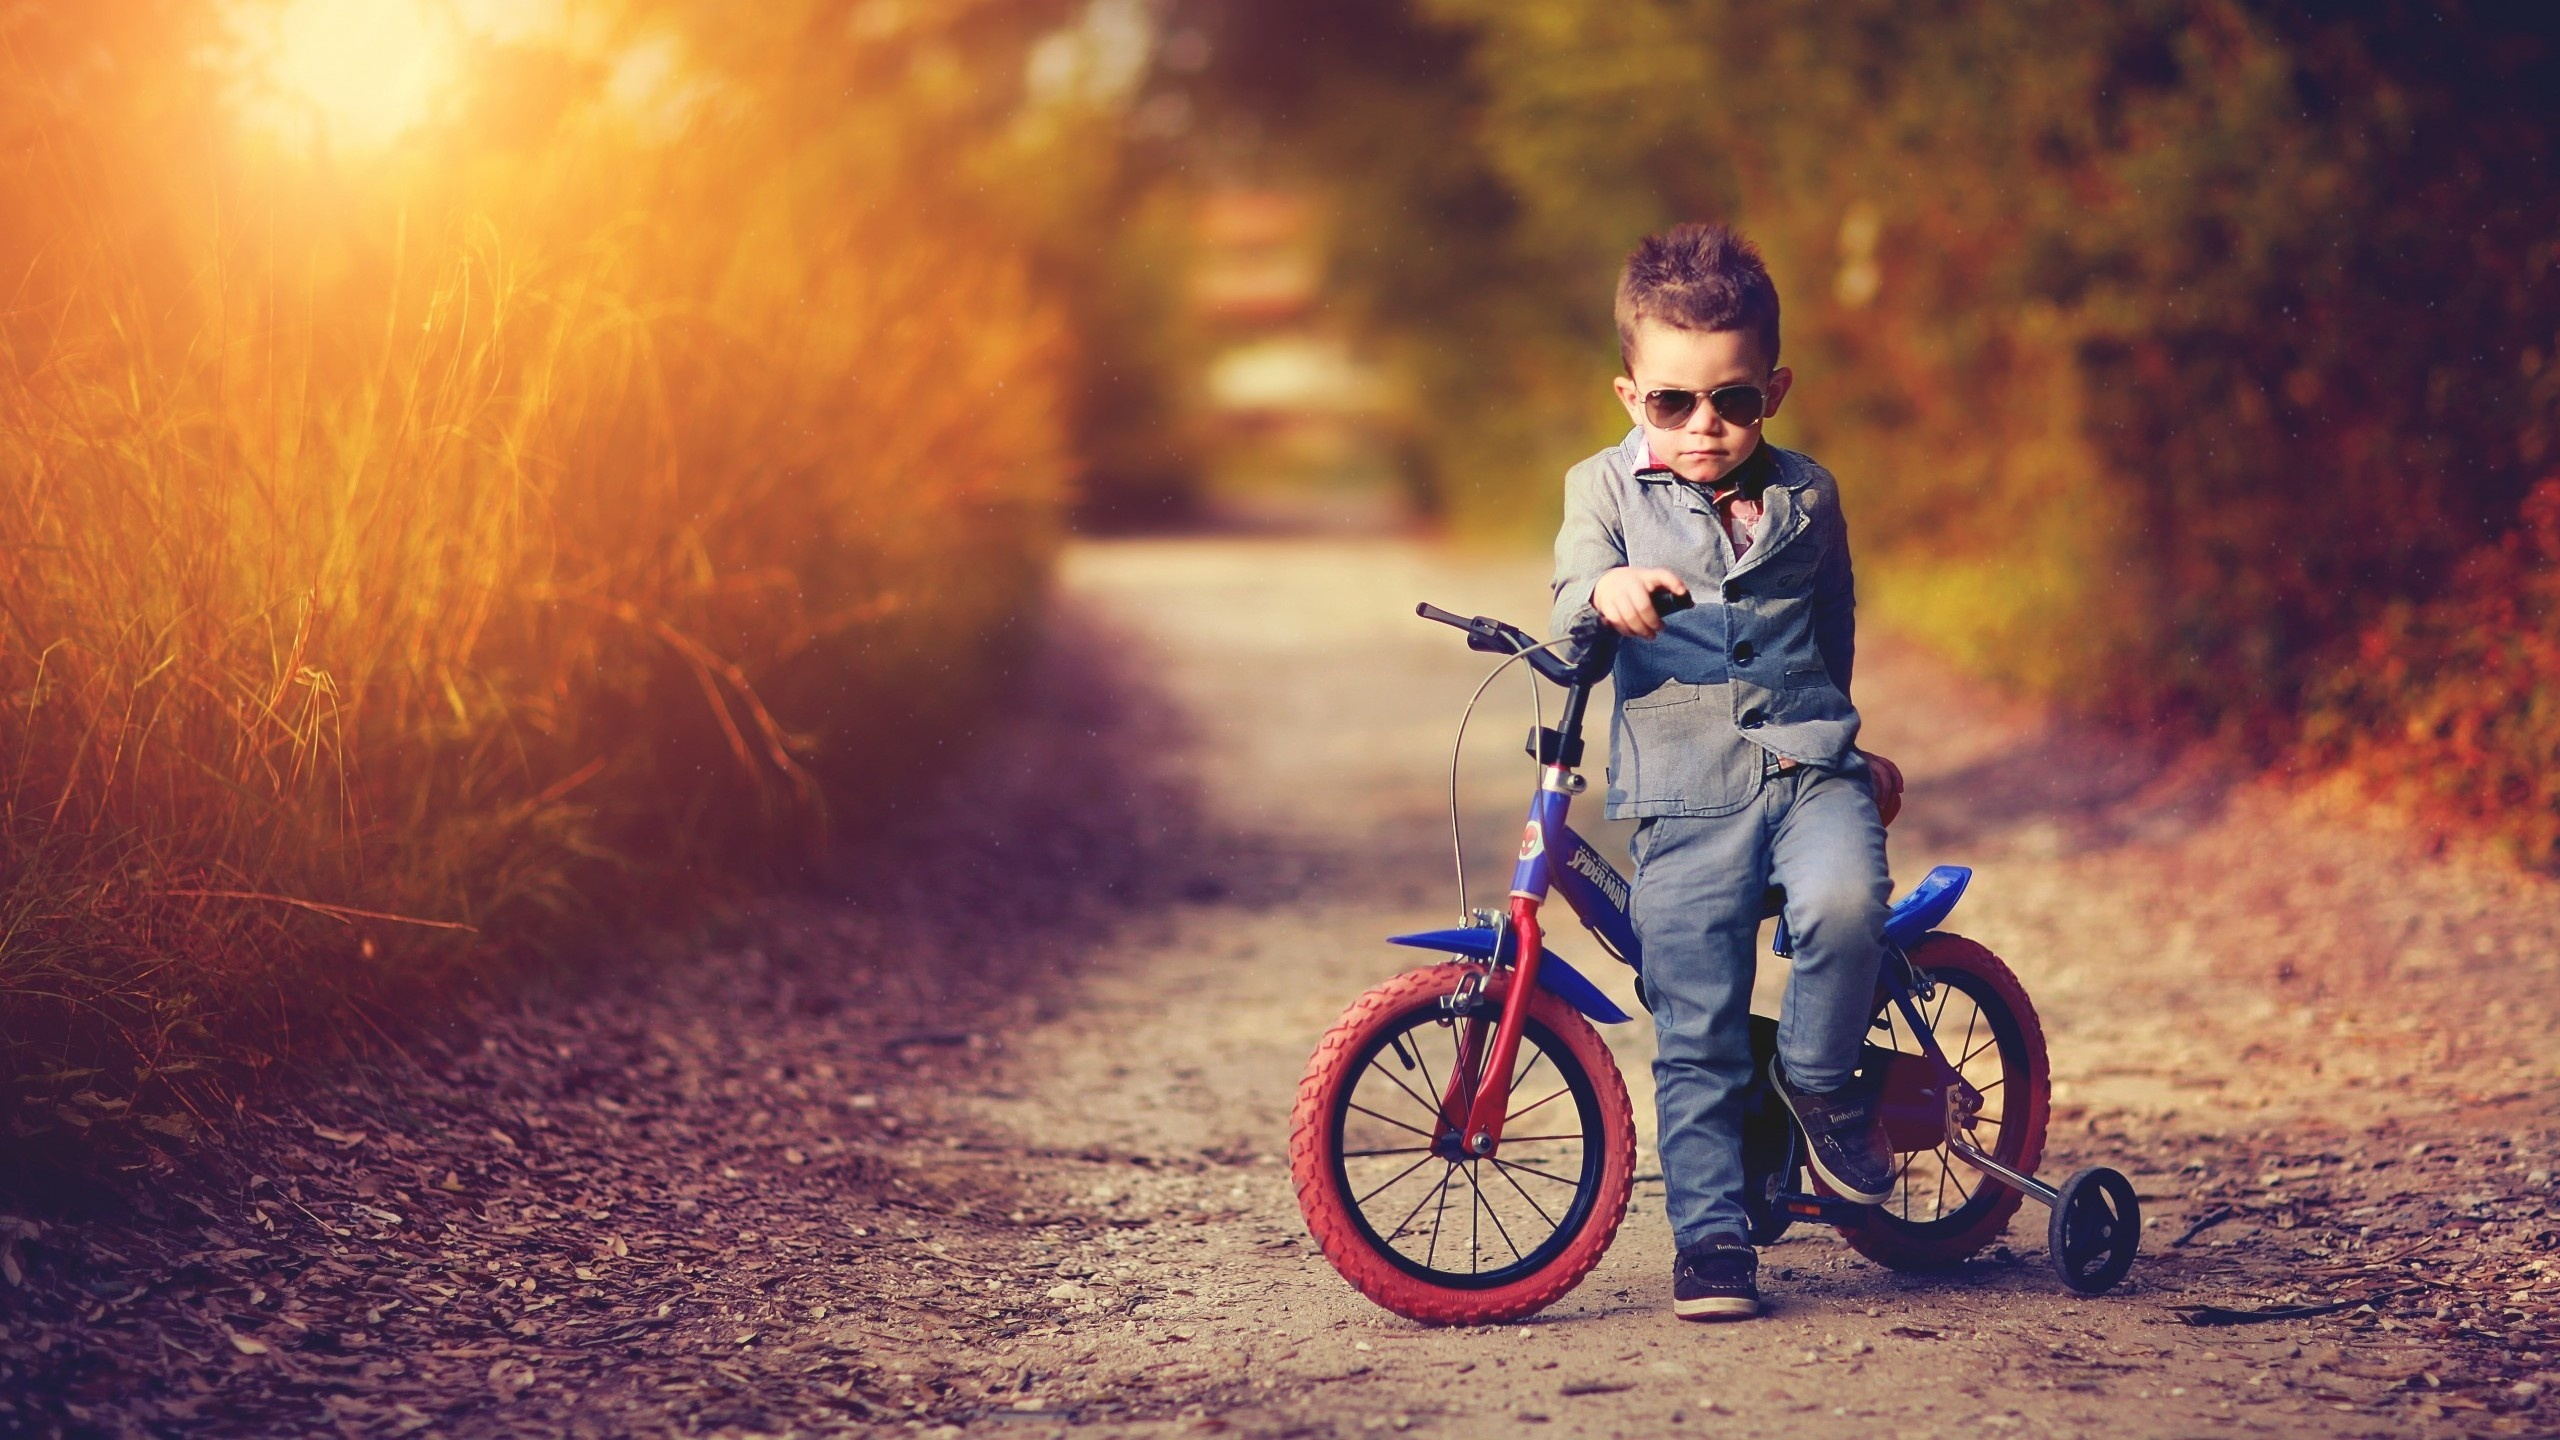 Boy Nice Costume And Bicycle